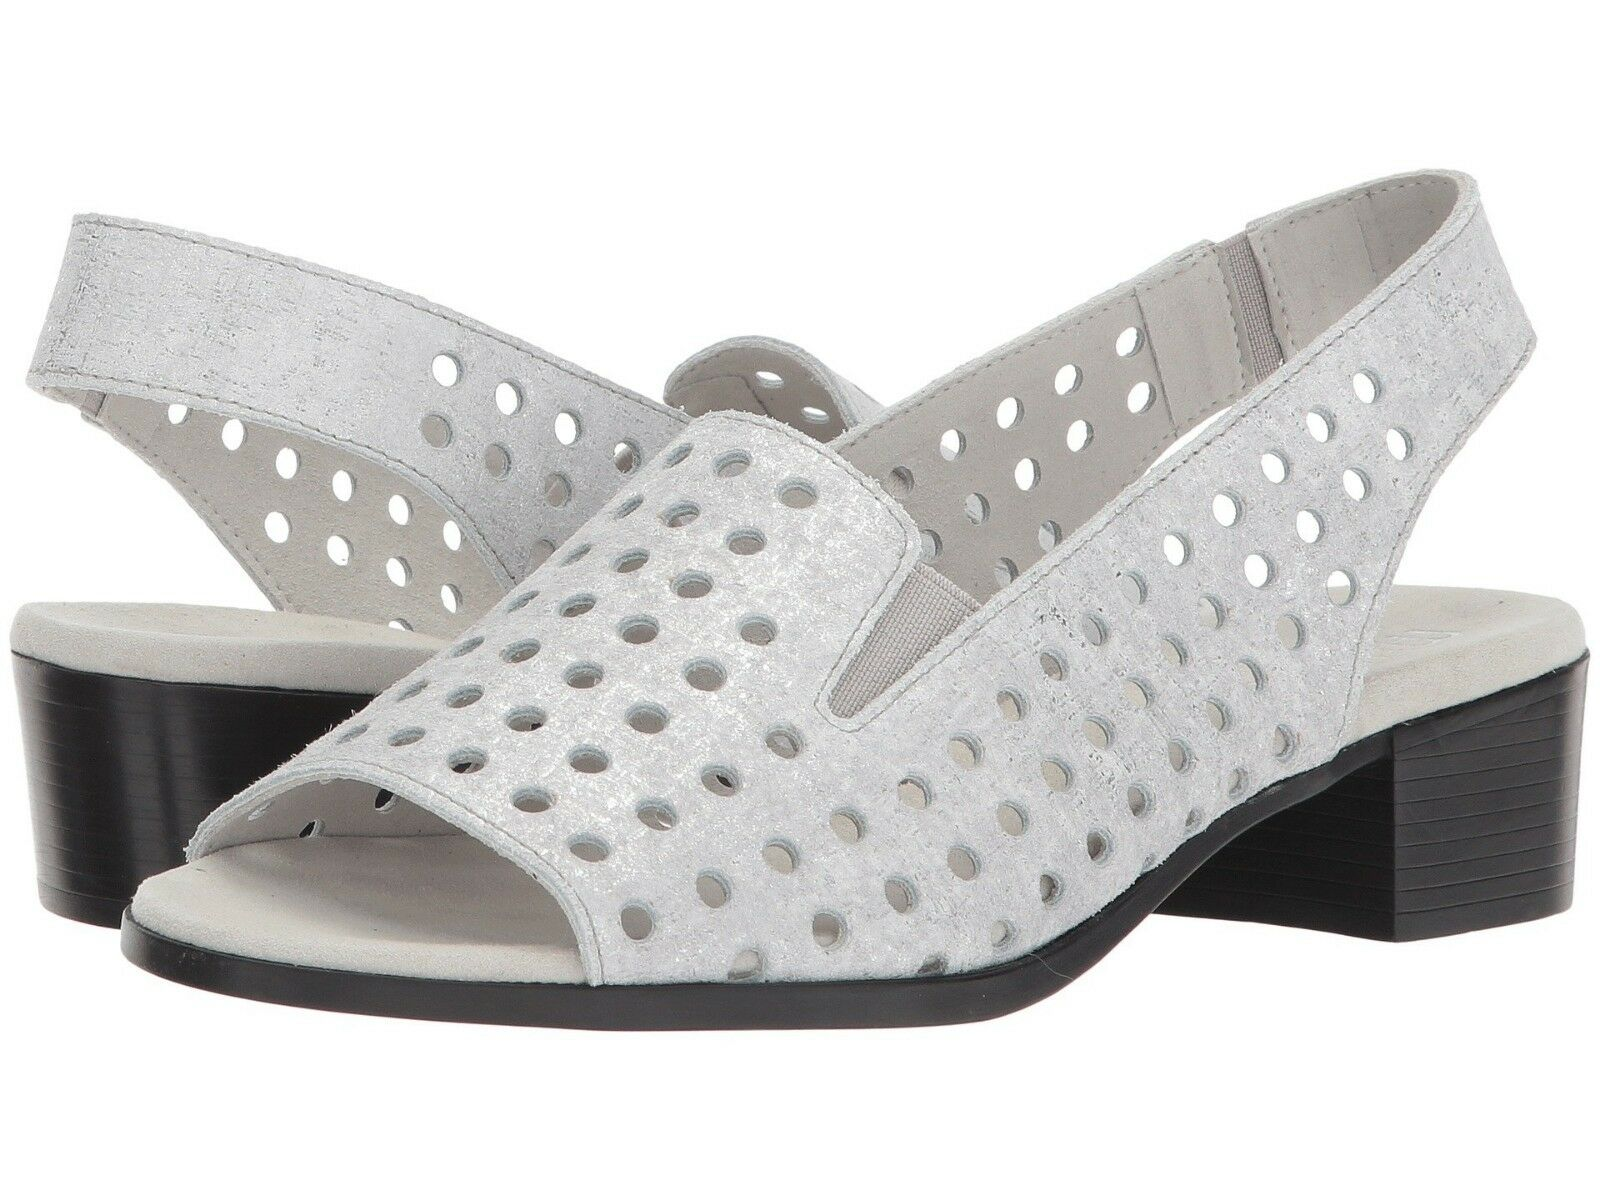 MUNRO MICKEE SILVER METALLIC LEATHER 9 W NIB  185 WOMENS SANDALS M427310